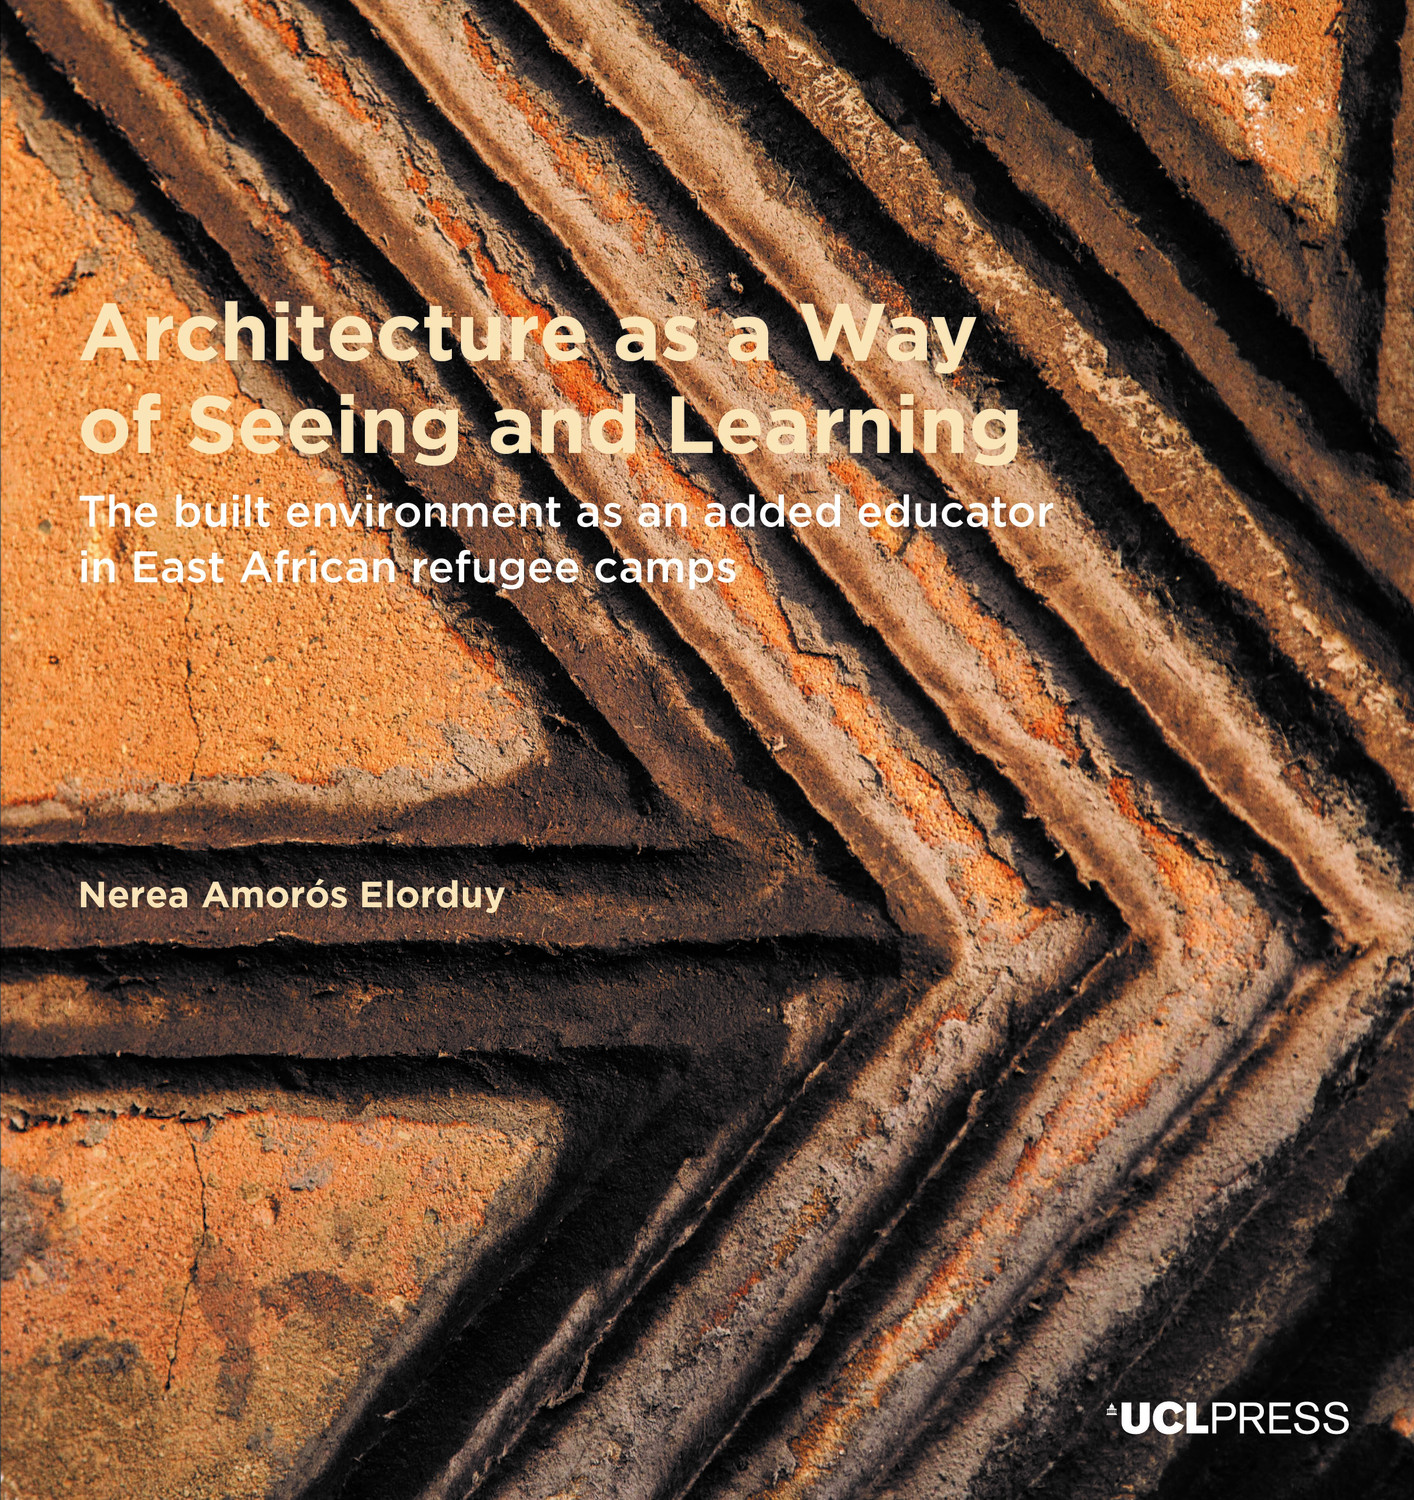 Architecture as a Way of Seeing and Learning